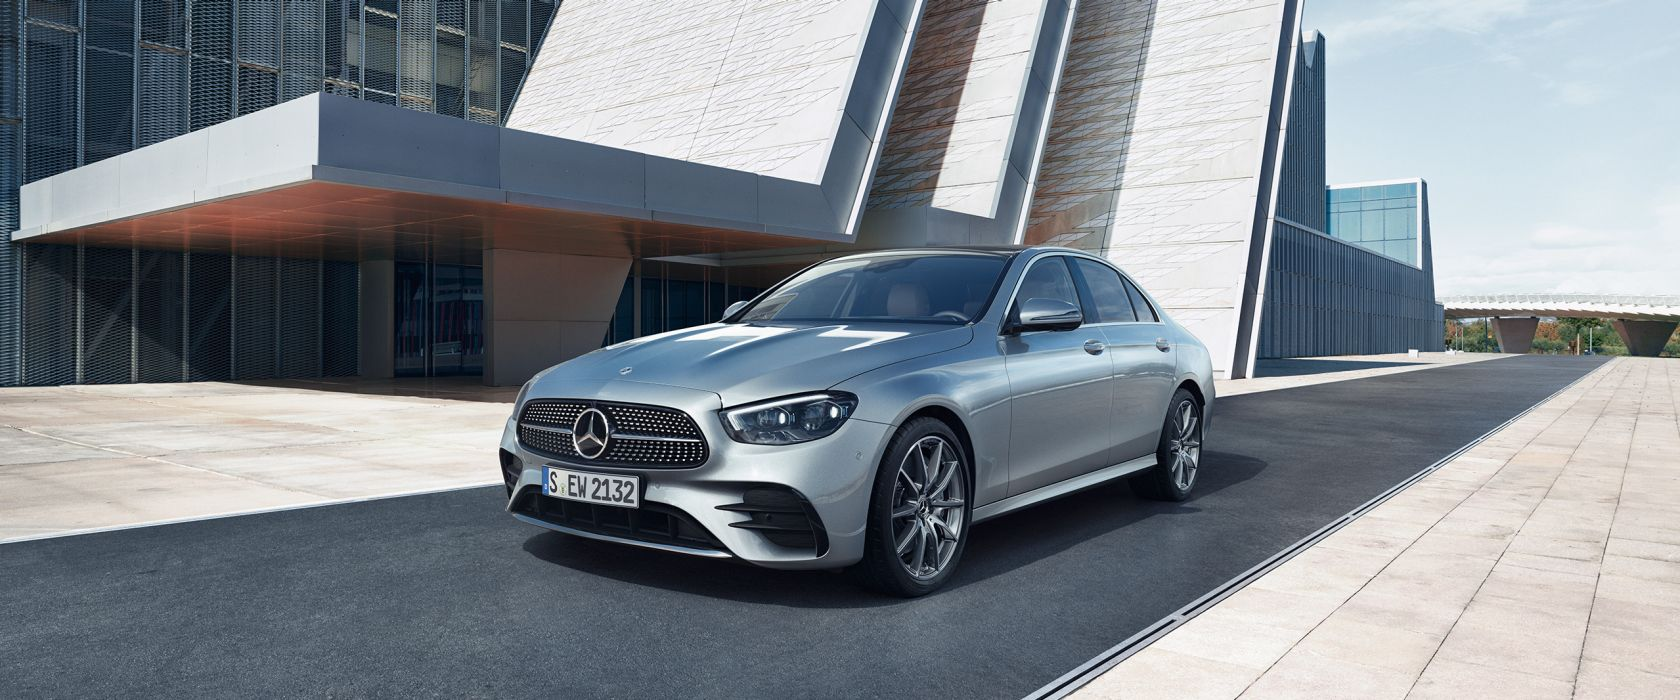 What you need to known about leasing a Mercedes